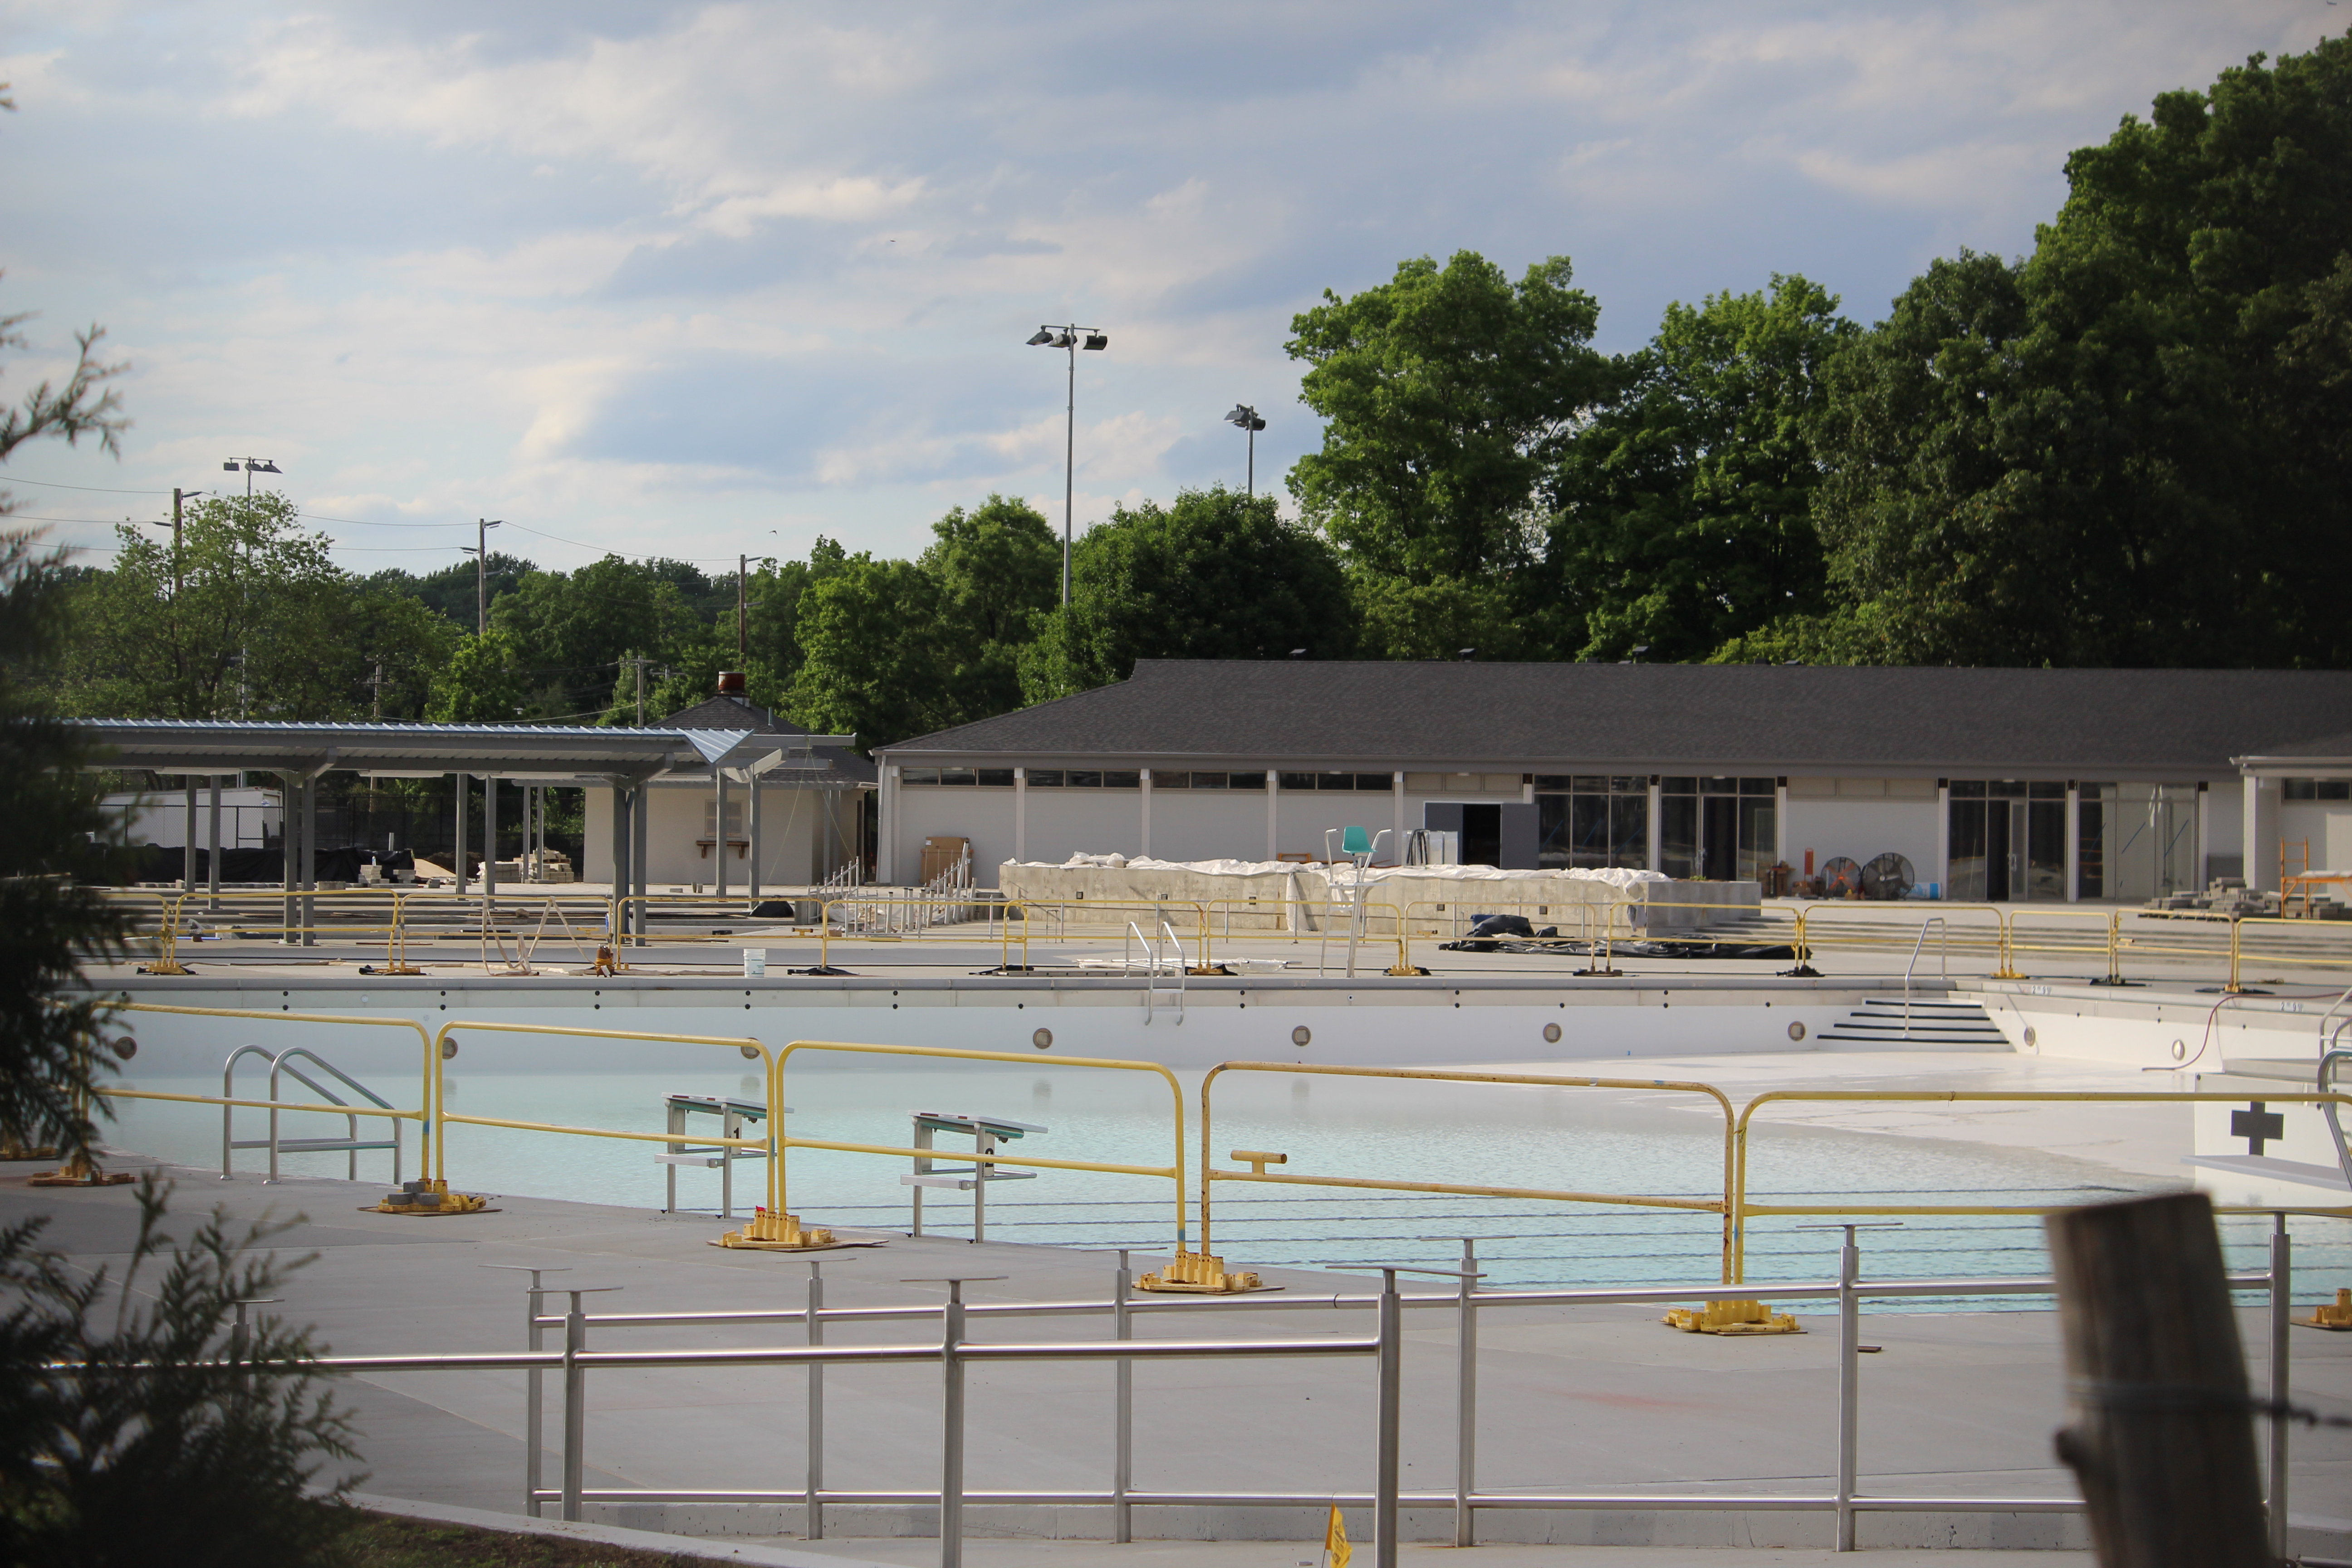 Unik Renovated Clinton G. Martin pool to open June 30 - New Hyde Park XY16